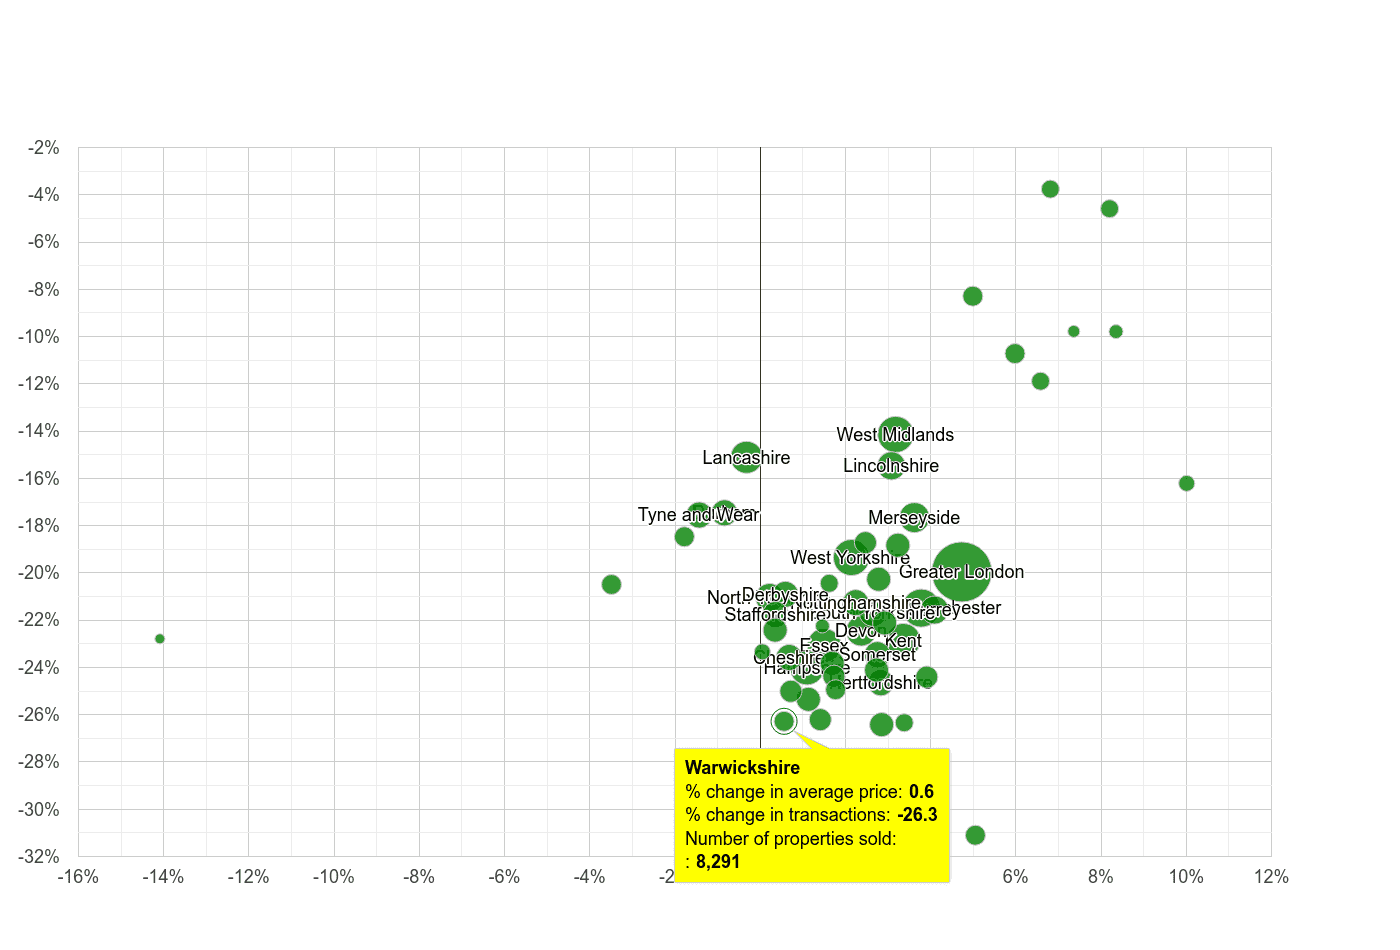 Warwickshire property price and sales volume change relative to other counties